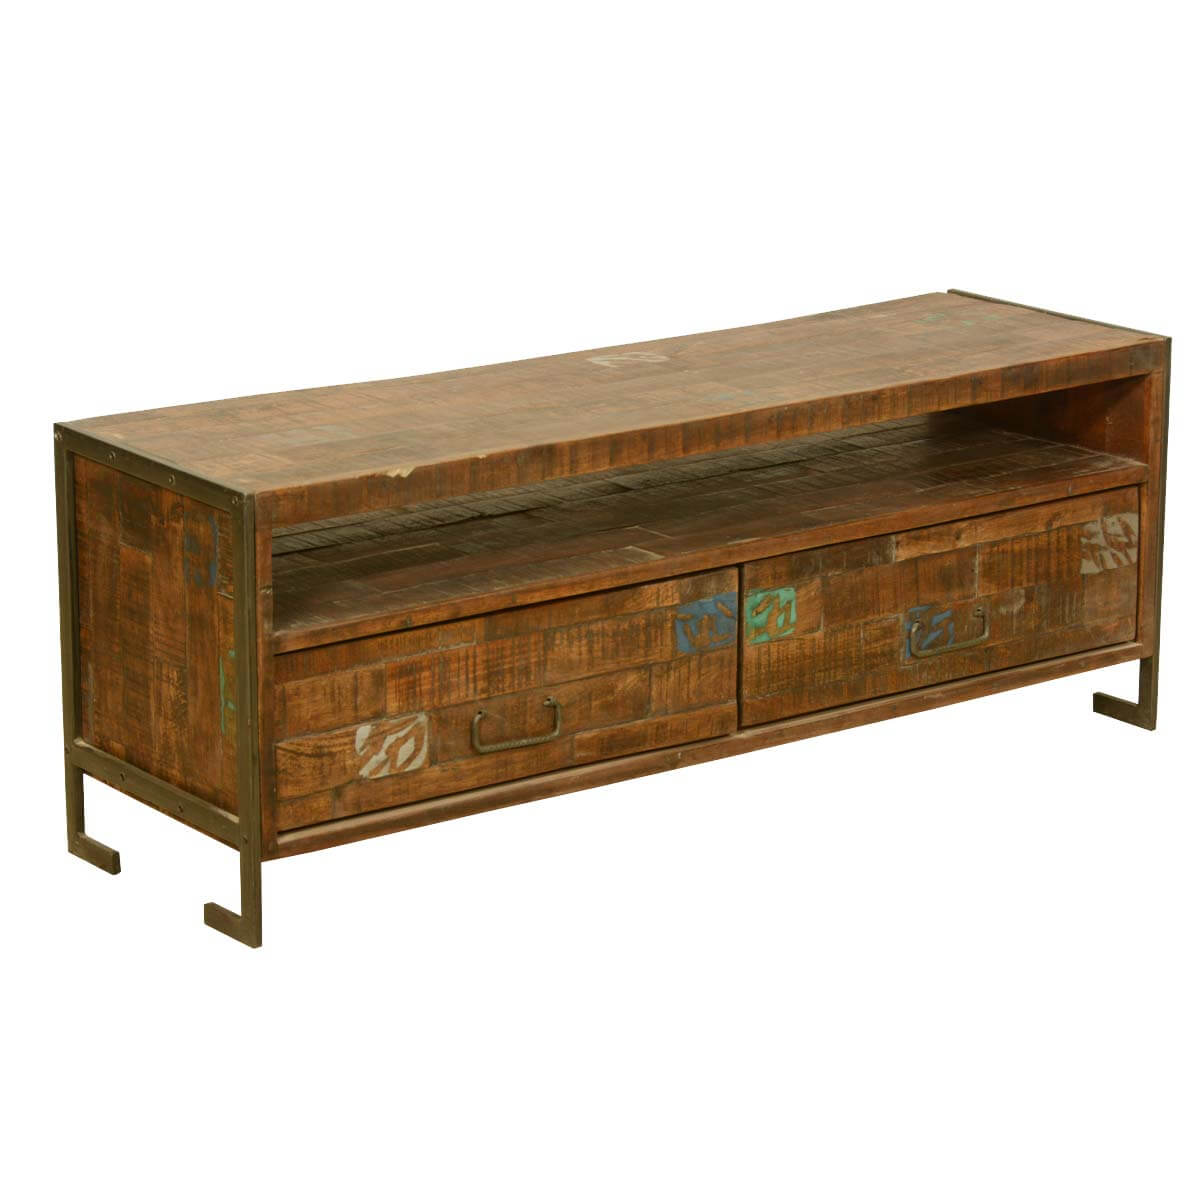 52 Reclaimed Wood Industrial Rustic Media Console Tv Stand